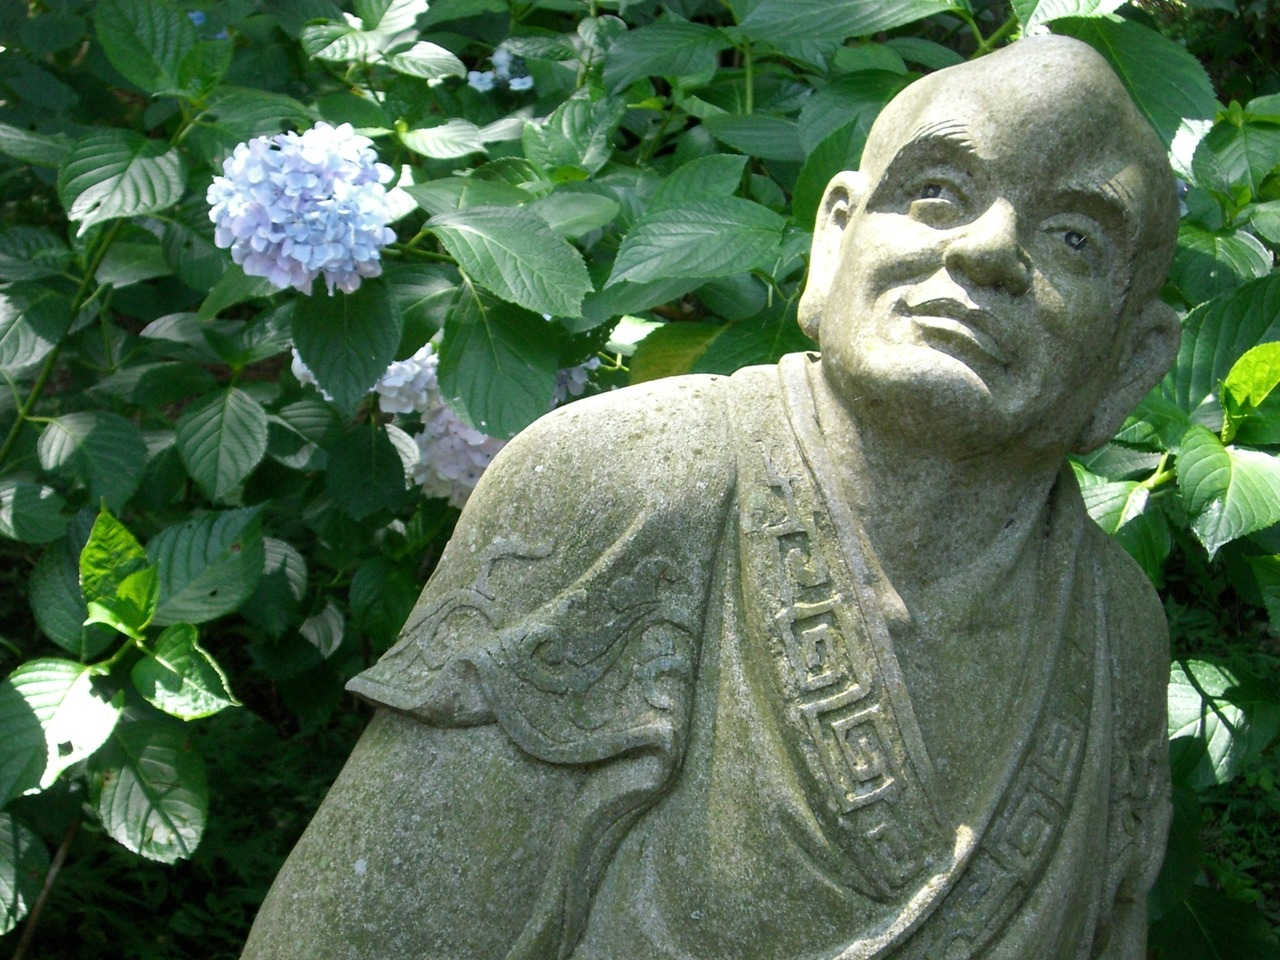 Statue from a buddhist temple in Japan.